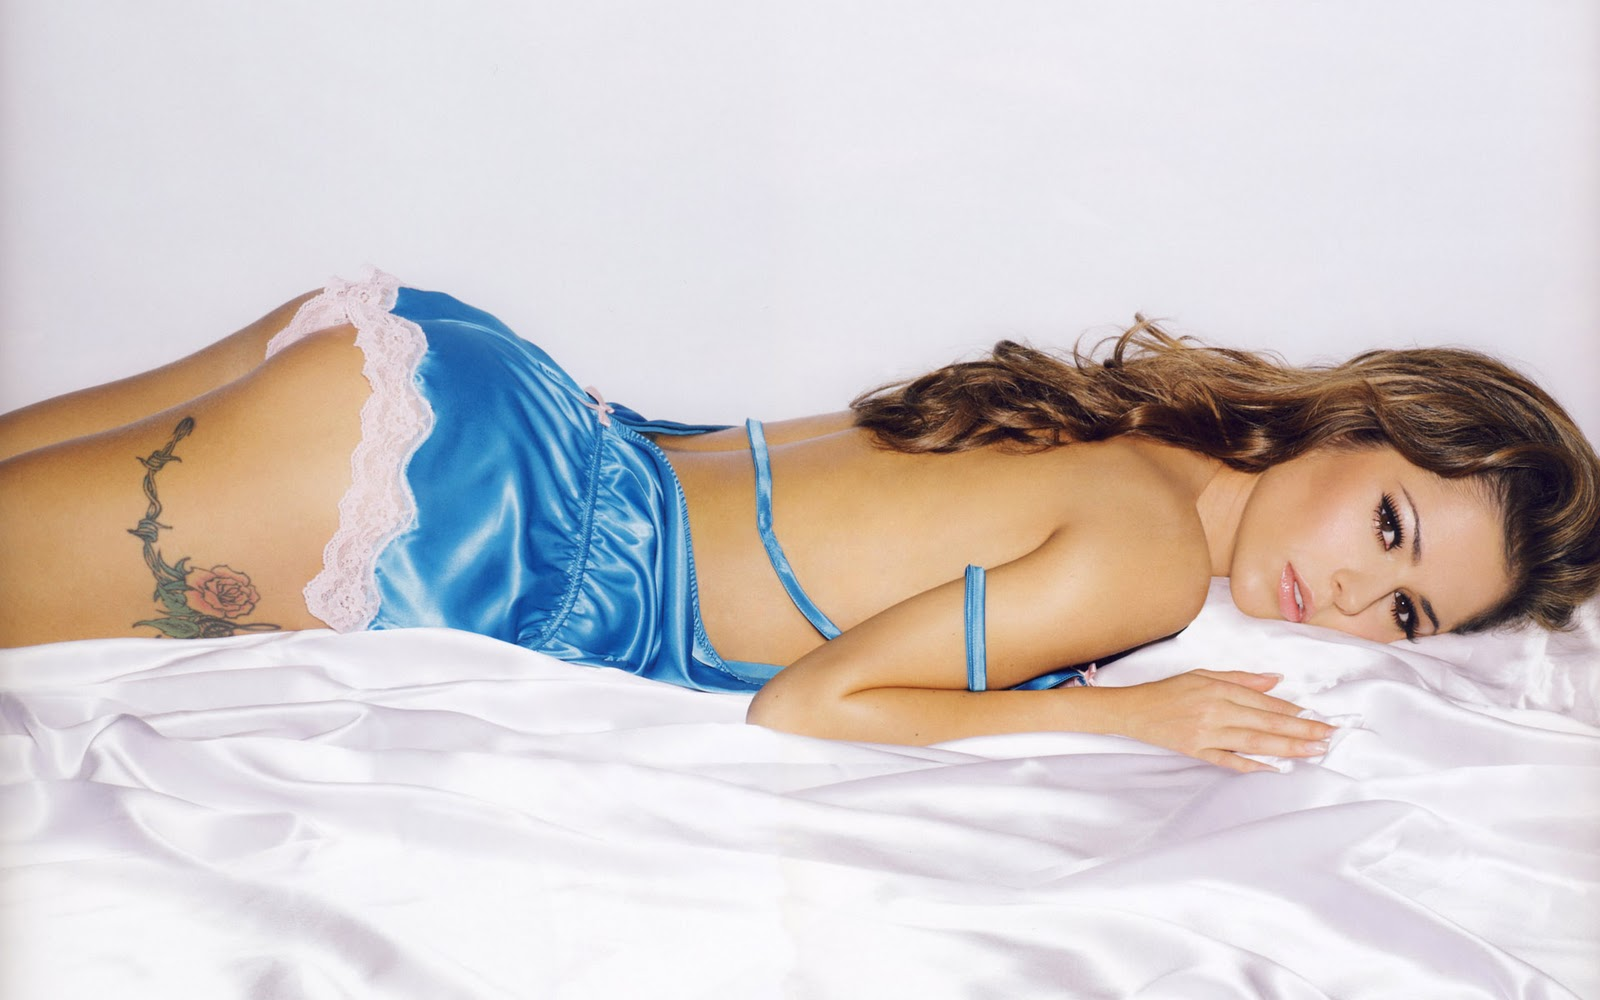 http://1.bp.blogspot.com/-6SSANPNRWJg/T6aQ1VWb45I/AAAAAAAAIeQ/rbWN7WNrsQw/s1600/27-best-top-desktop-hot-celebrity-girl-sexy-lingerie-wallpapers-hd-cheryl-cole-blue-lingerie.jpg